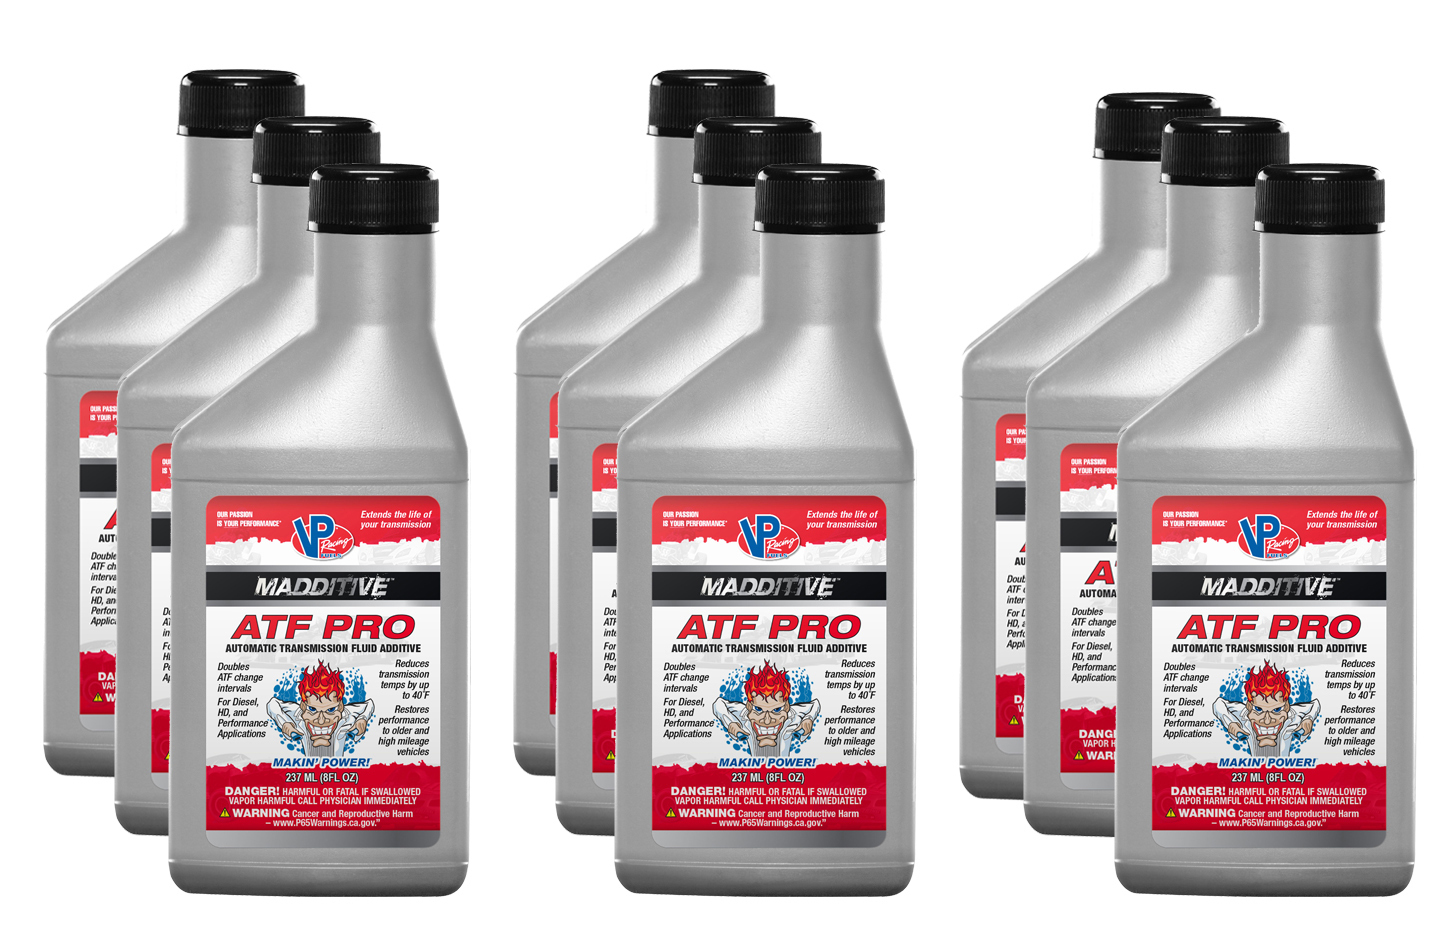 Vp Fuel Containers Transmission Additive Pro Canada 8oz (Case 9)